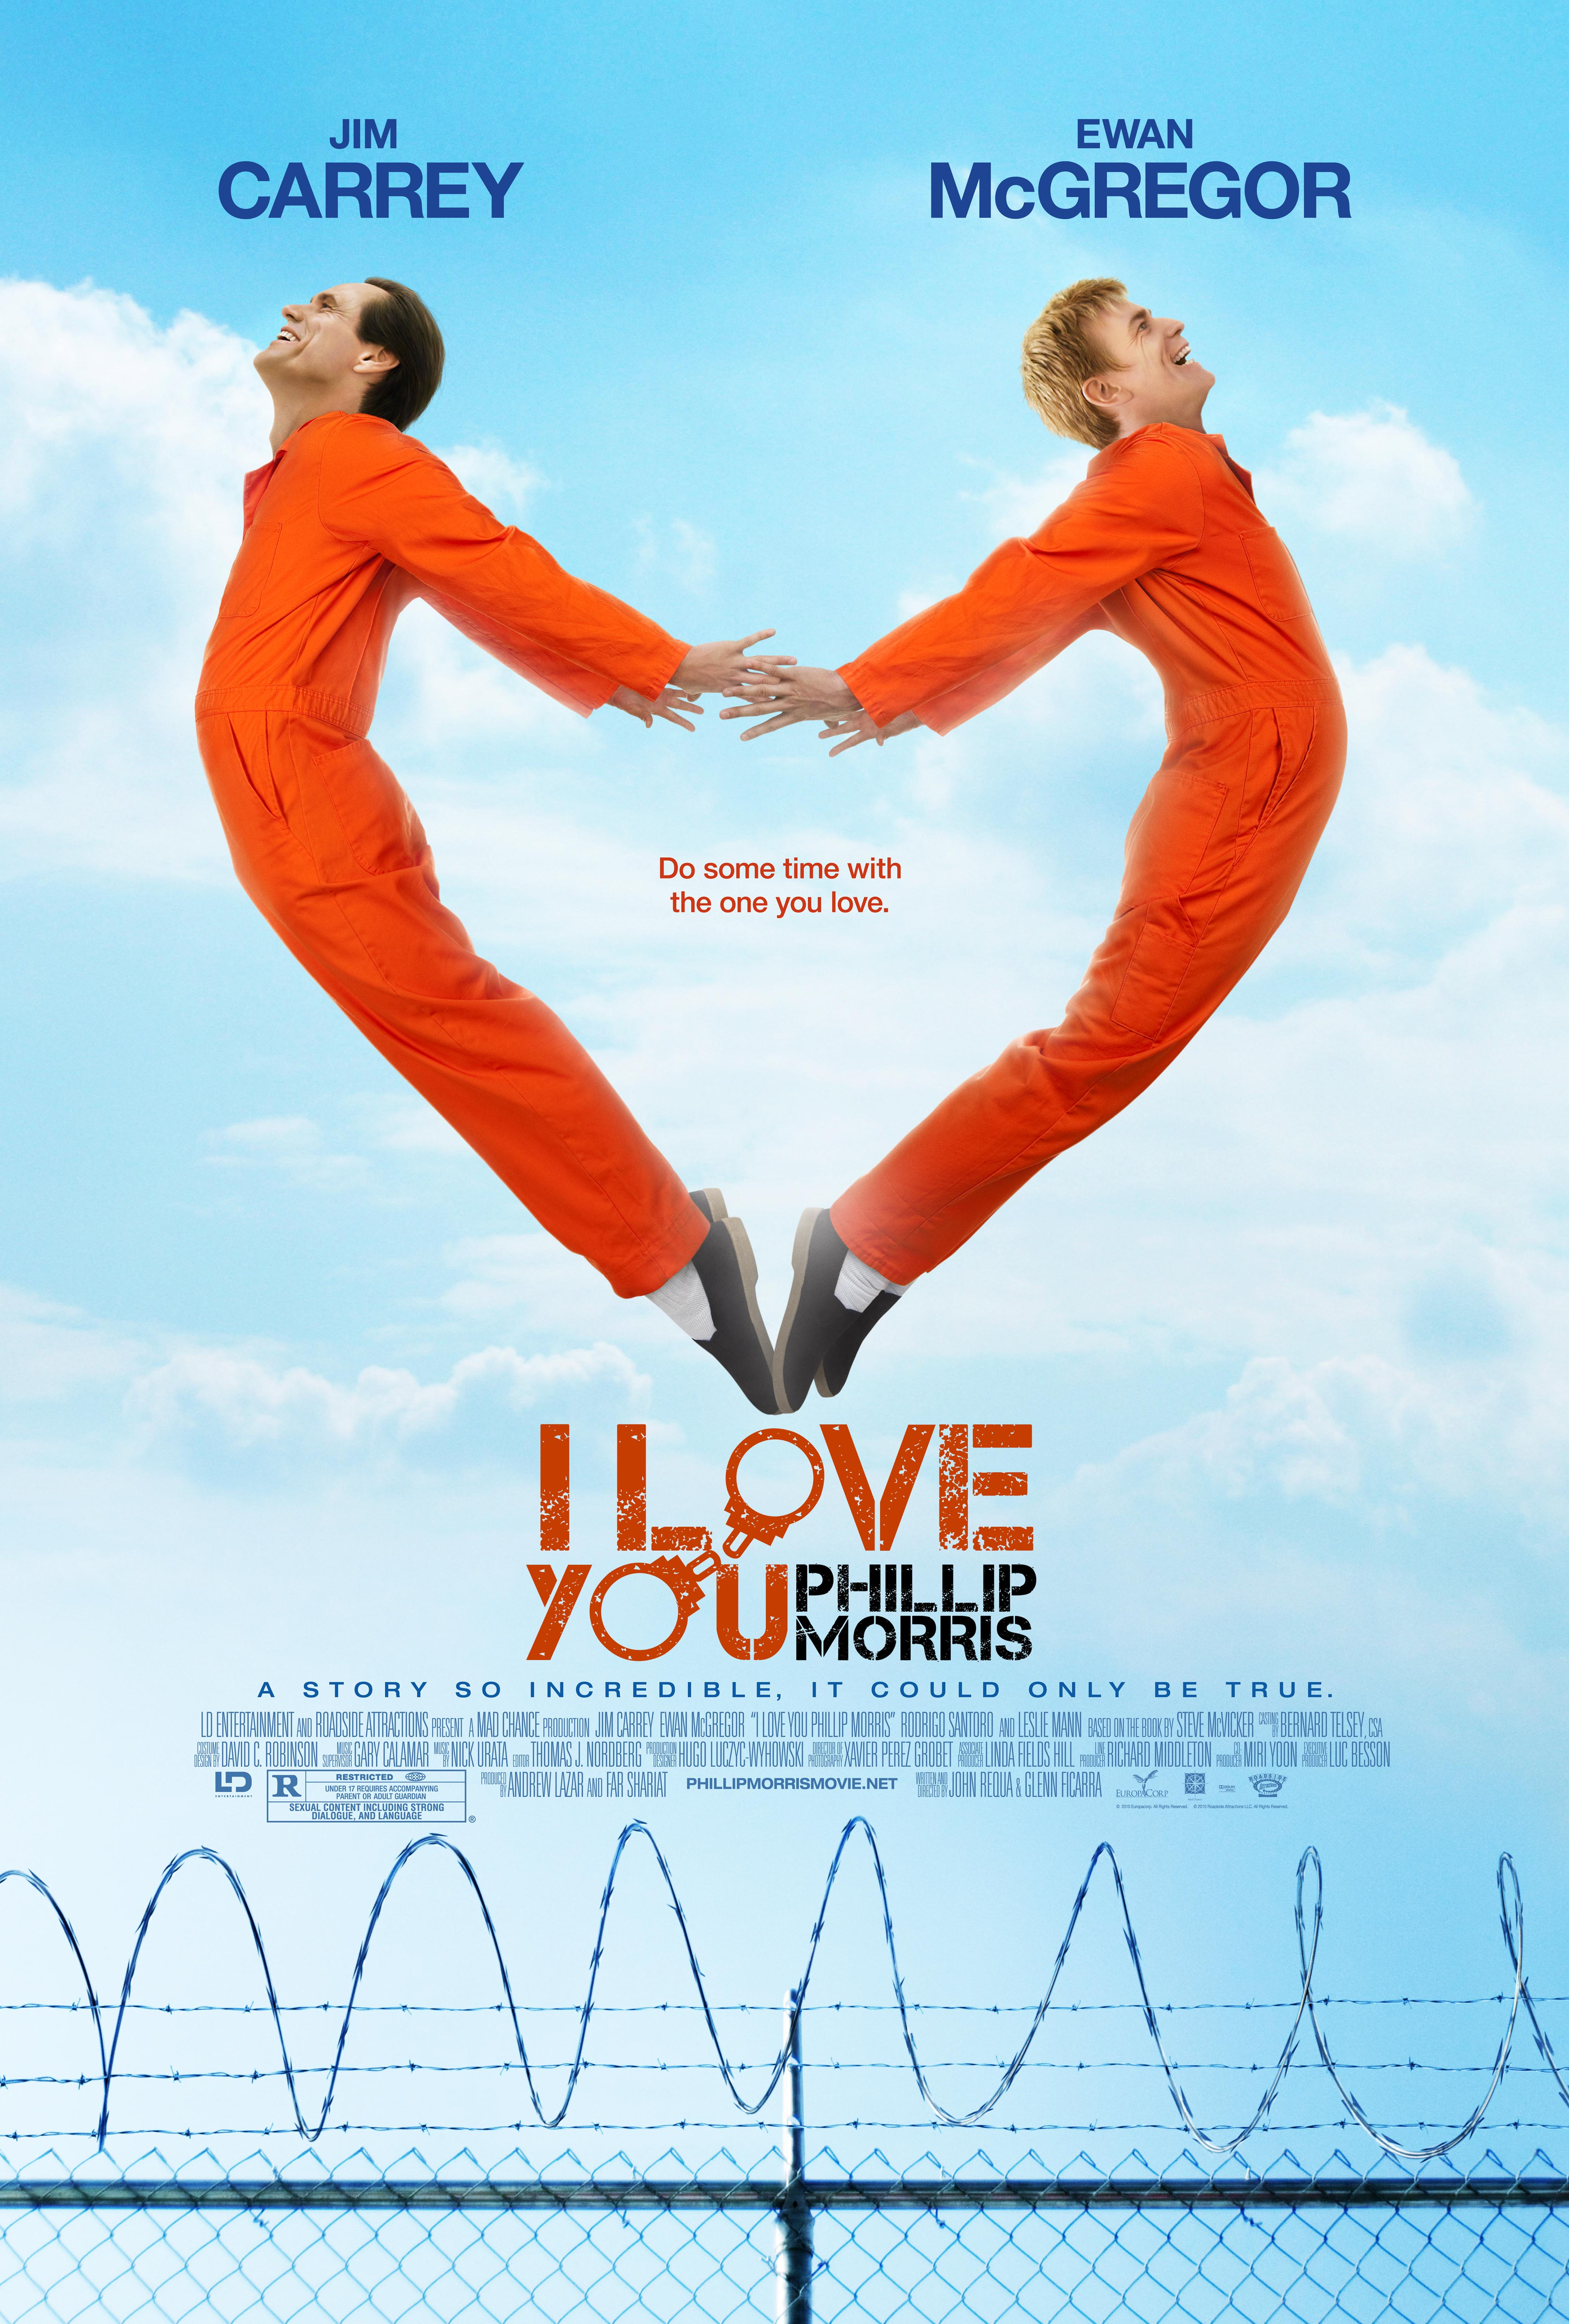 Movie Posters For I LOVE YOU PHILLIP MORRIS, HARRY POTTER